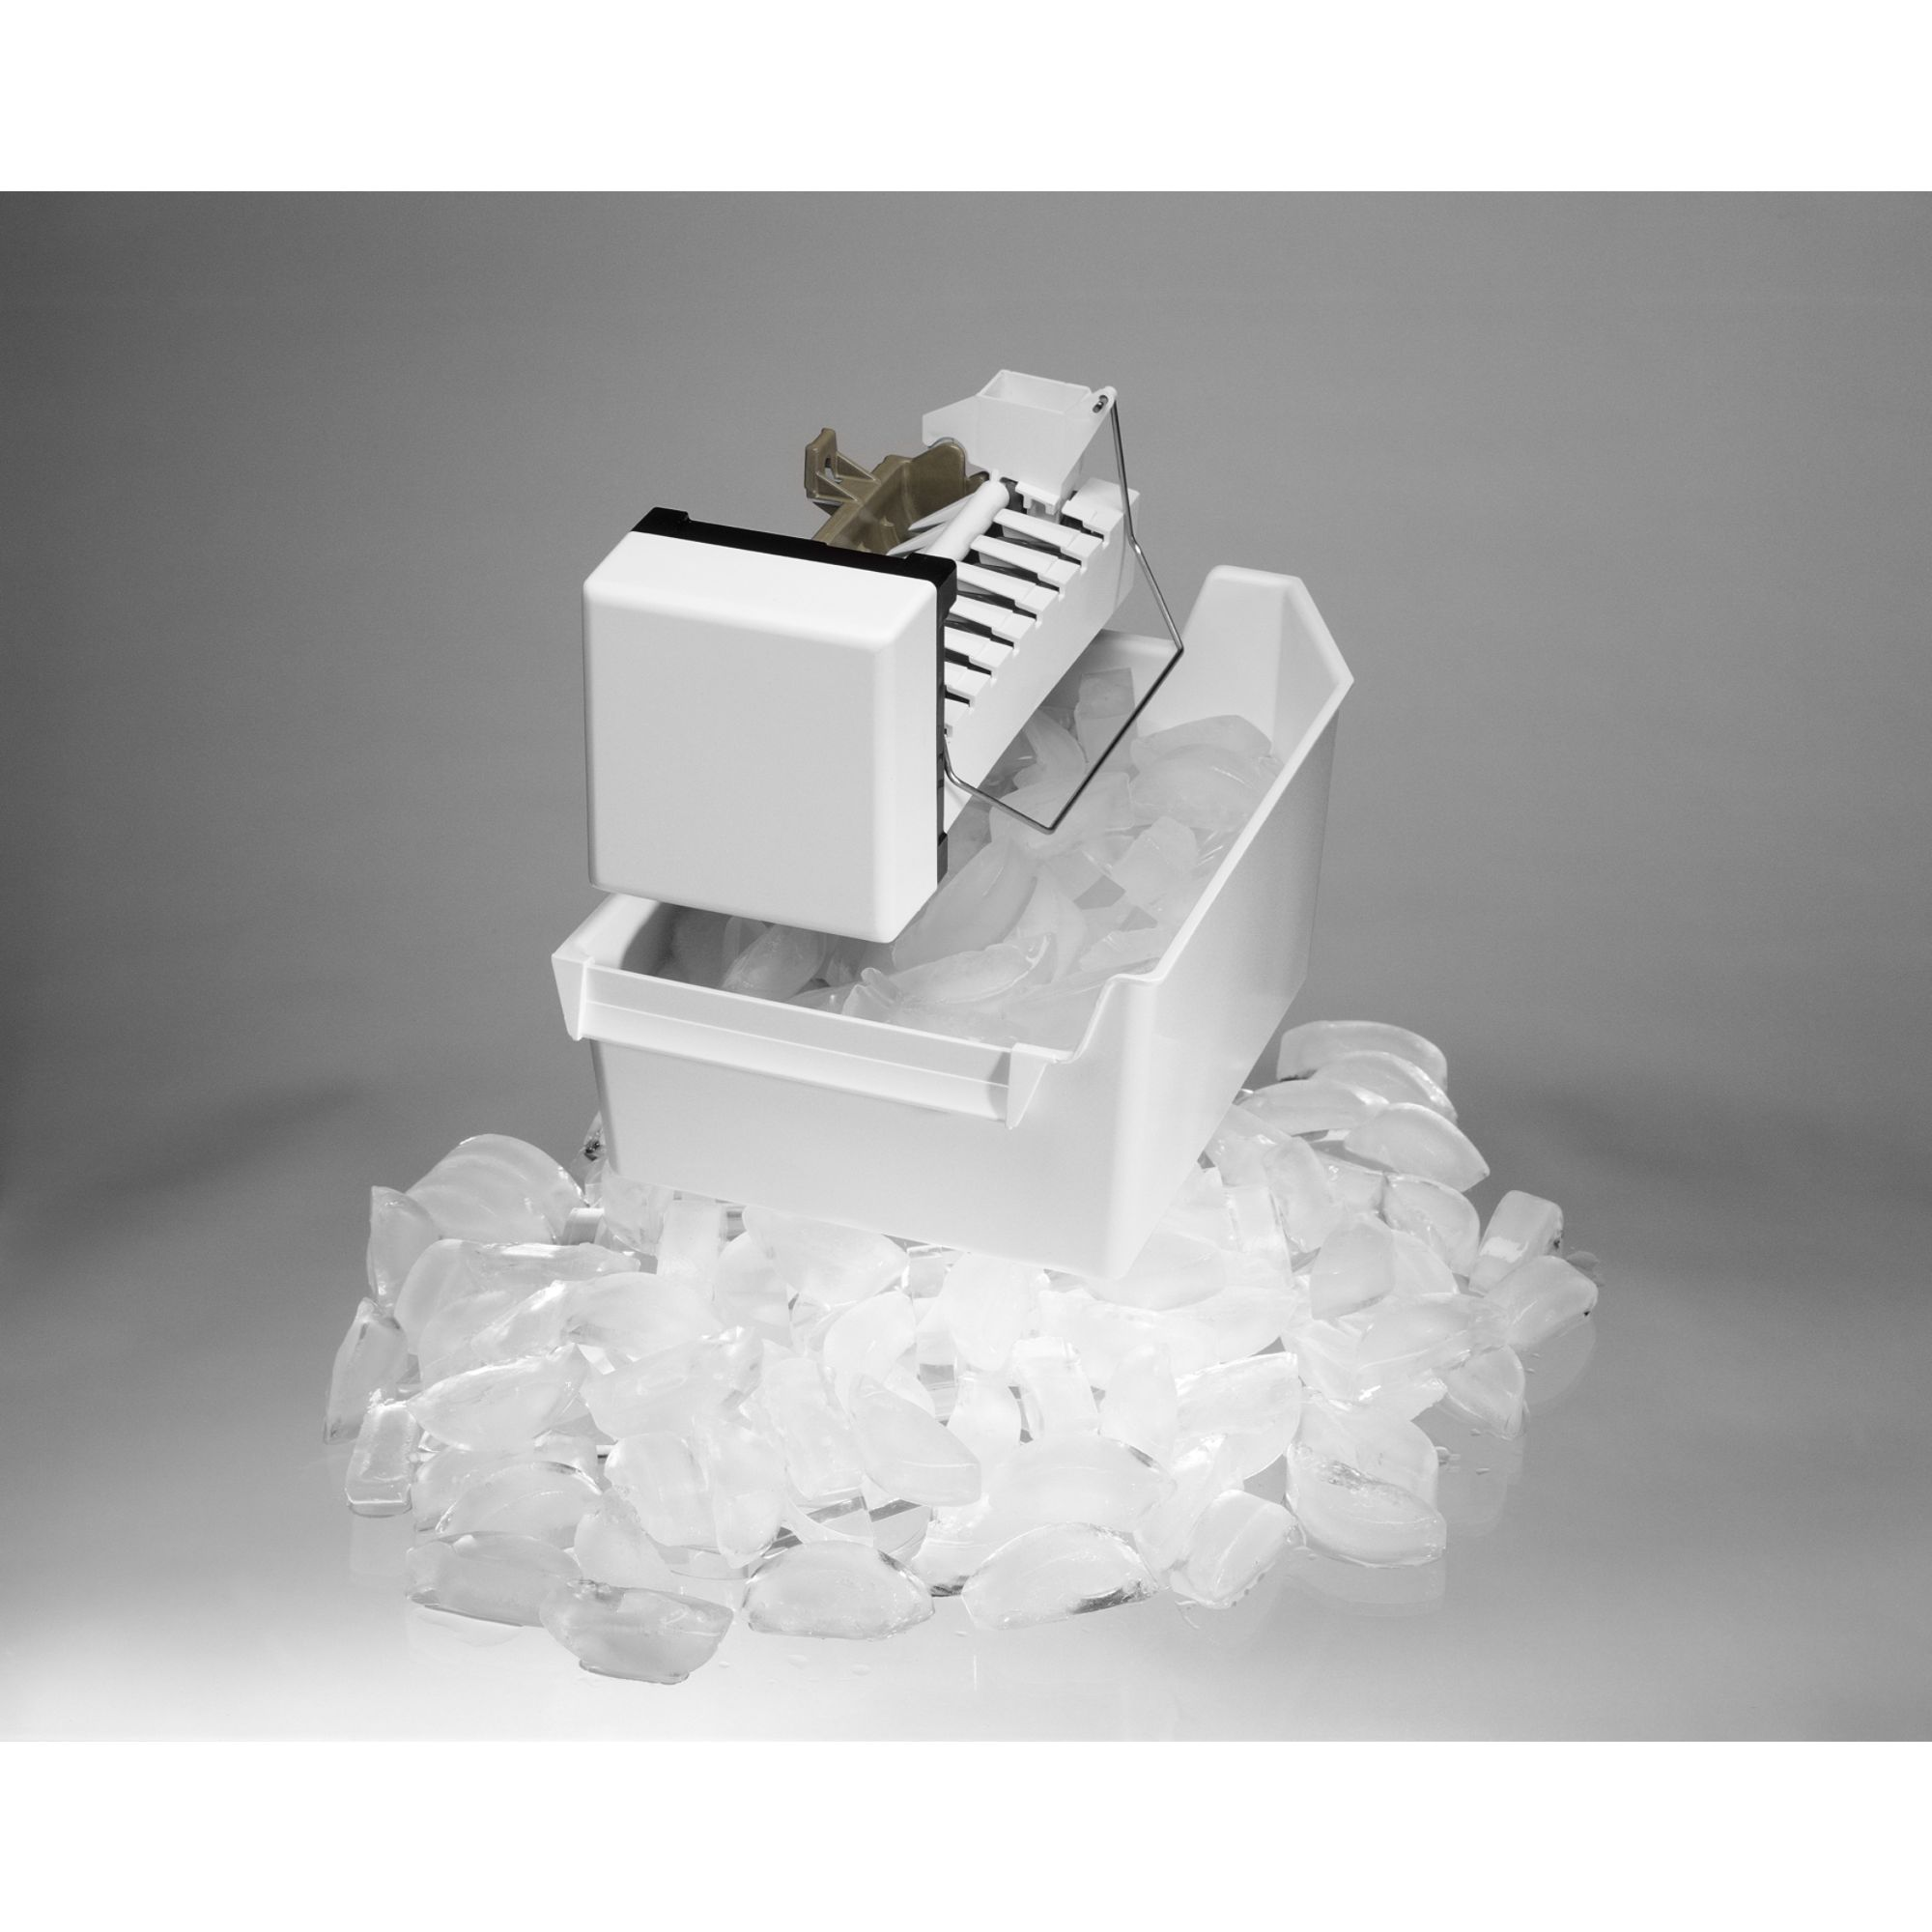 Image of Kenmore 08560 White Icemaker Kit